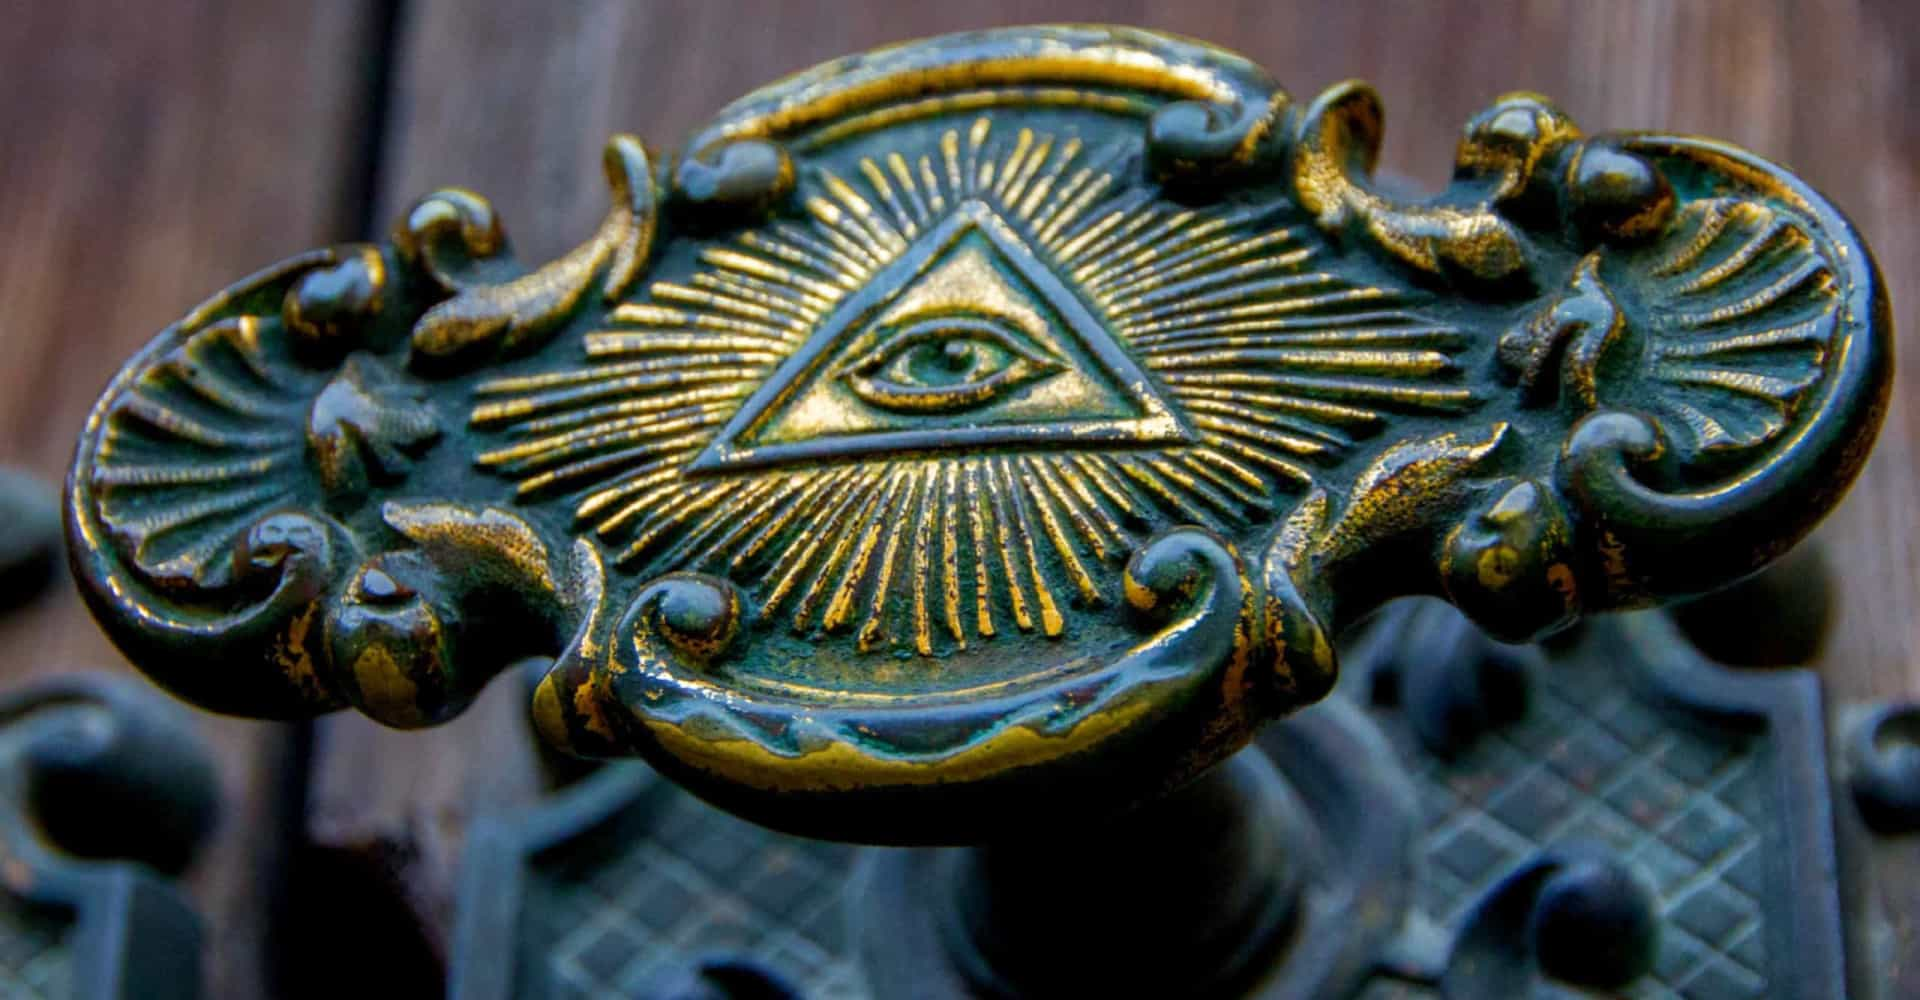 Decoding the symbolism of Freemasonry